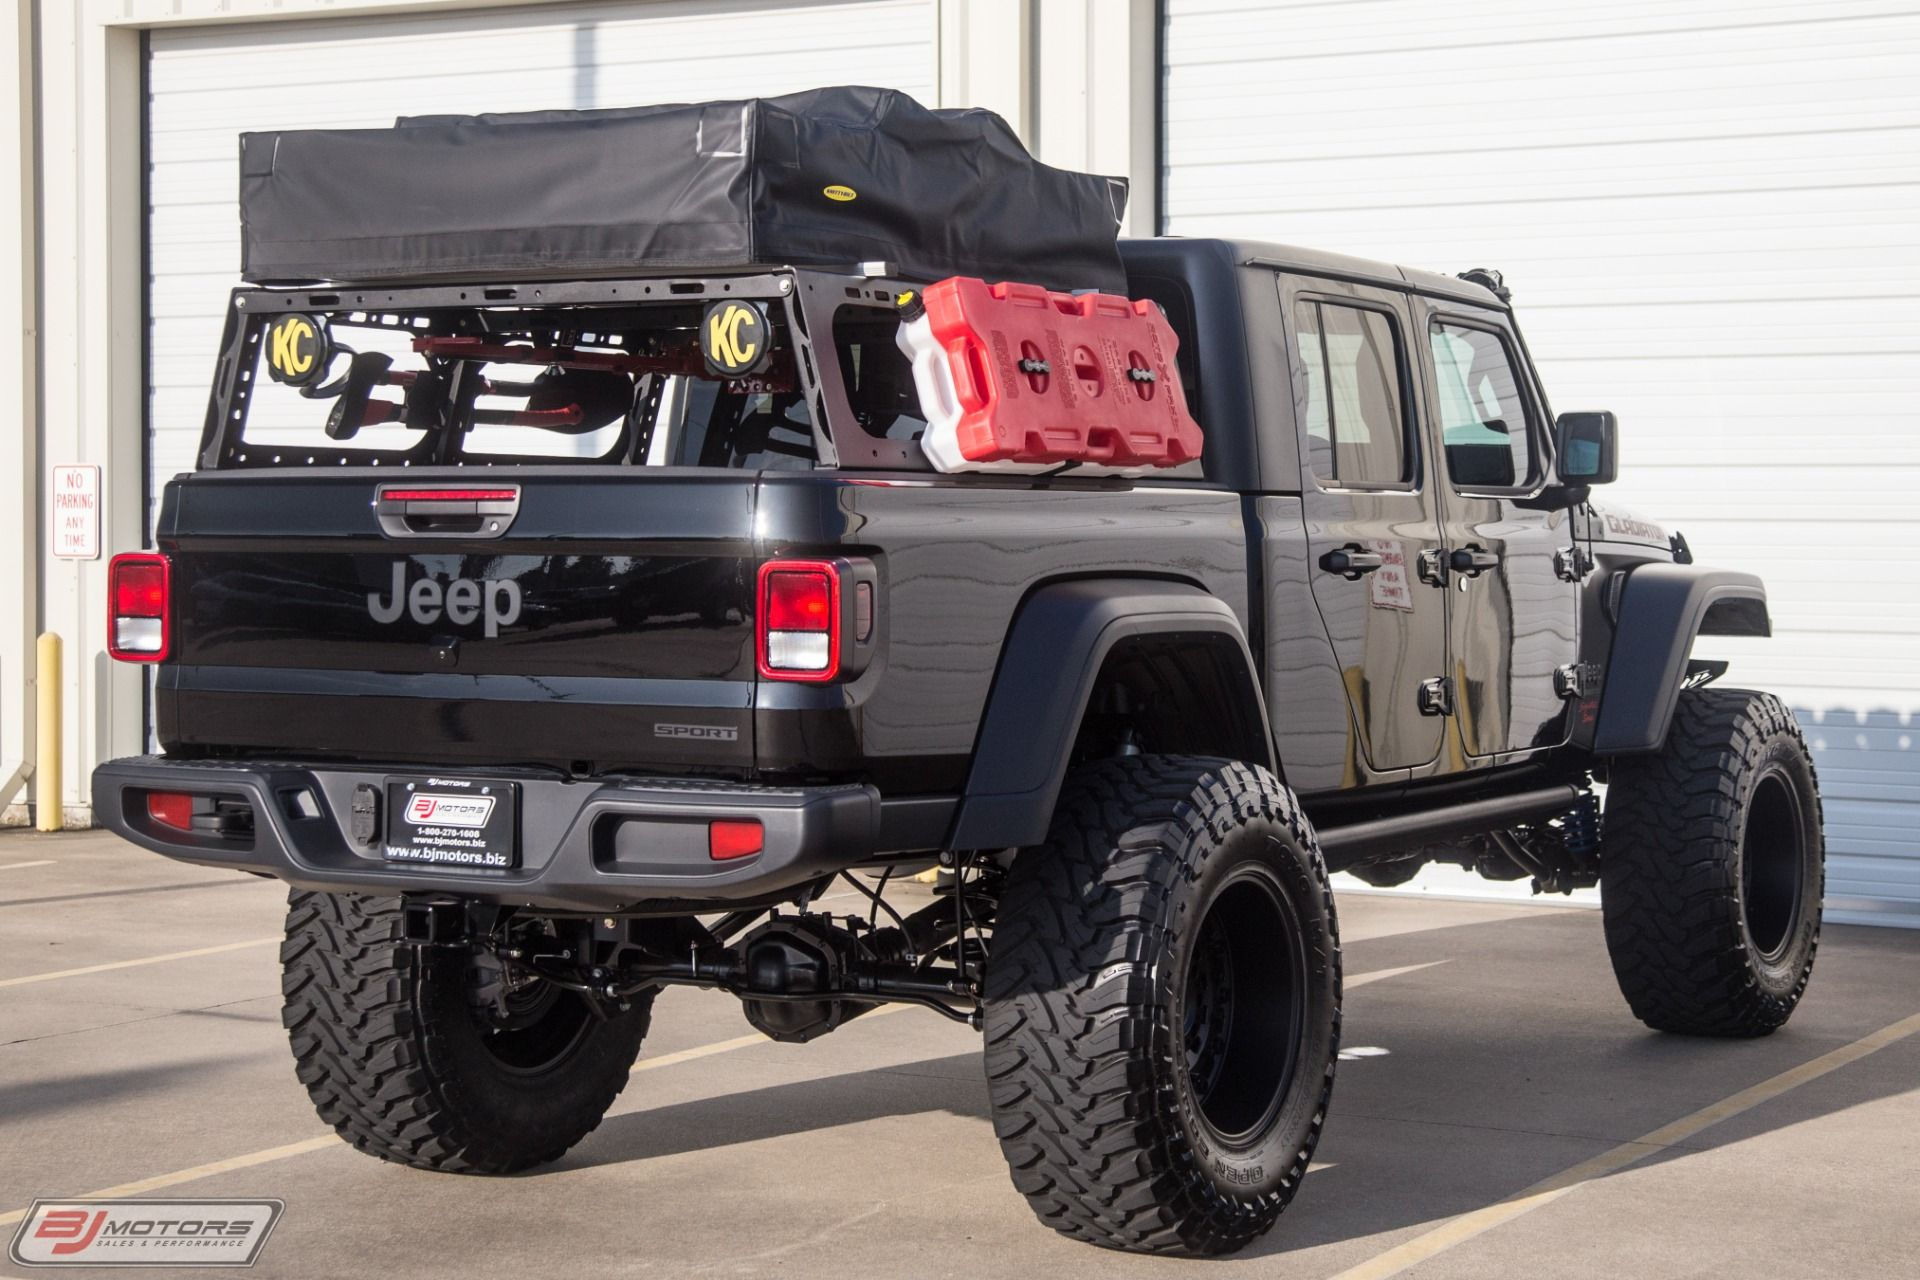 Pin on Jeep gladiator